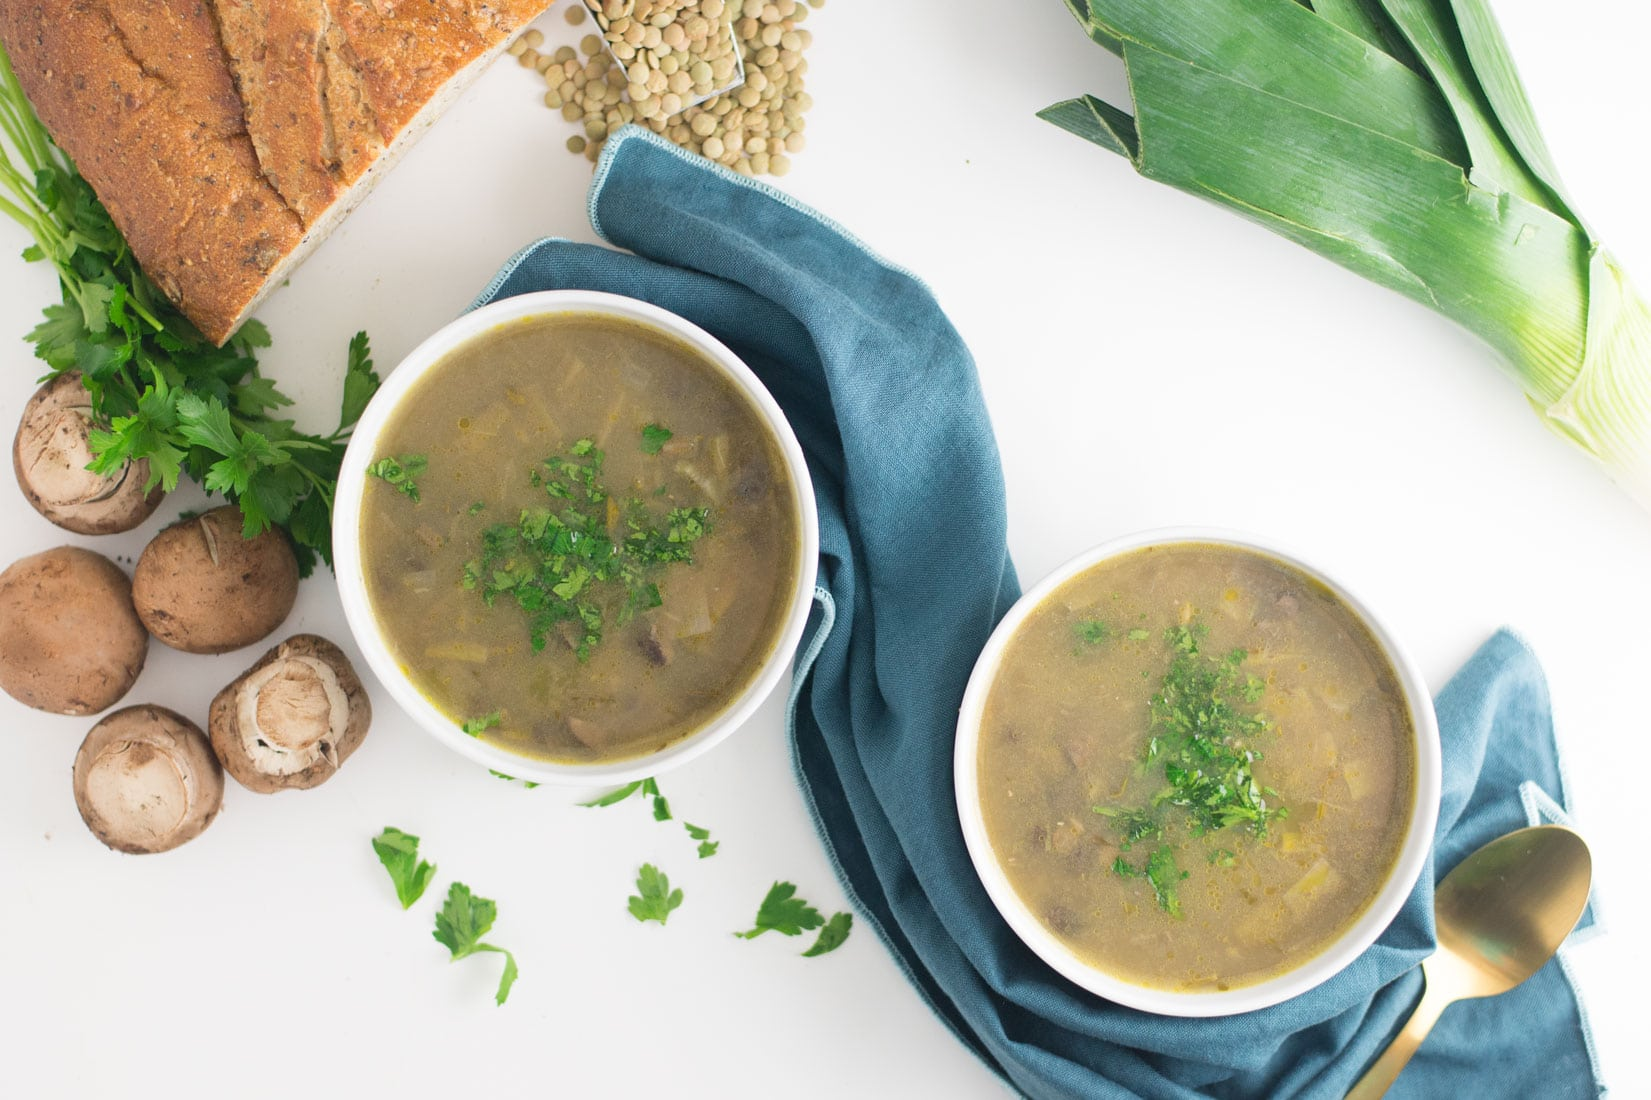 two bowls of vegan mushroom soup with bread, mushroom, leeks, and lentils